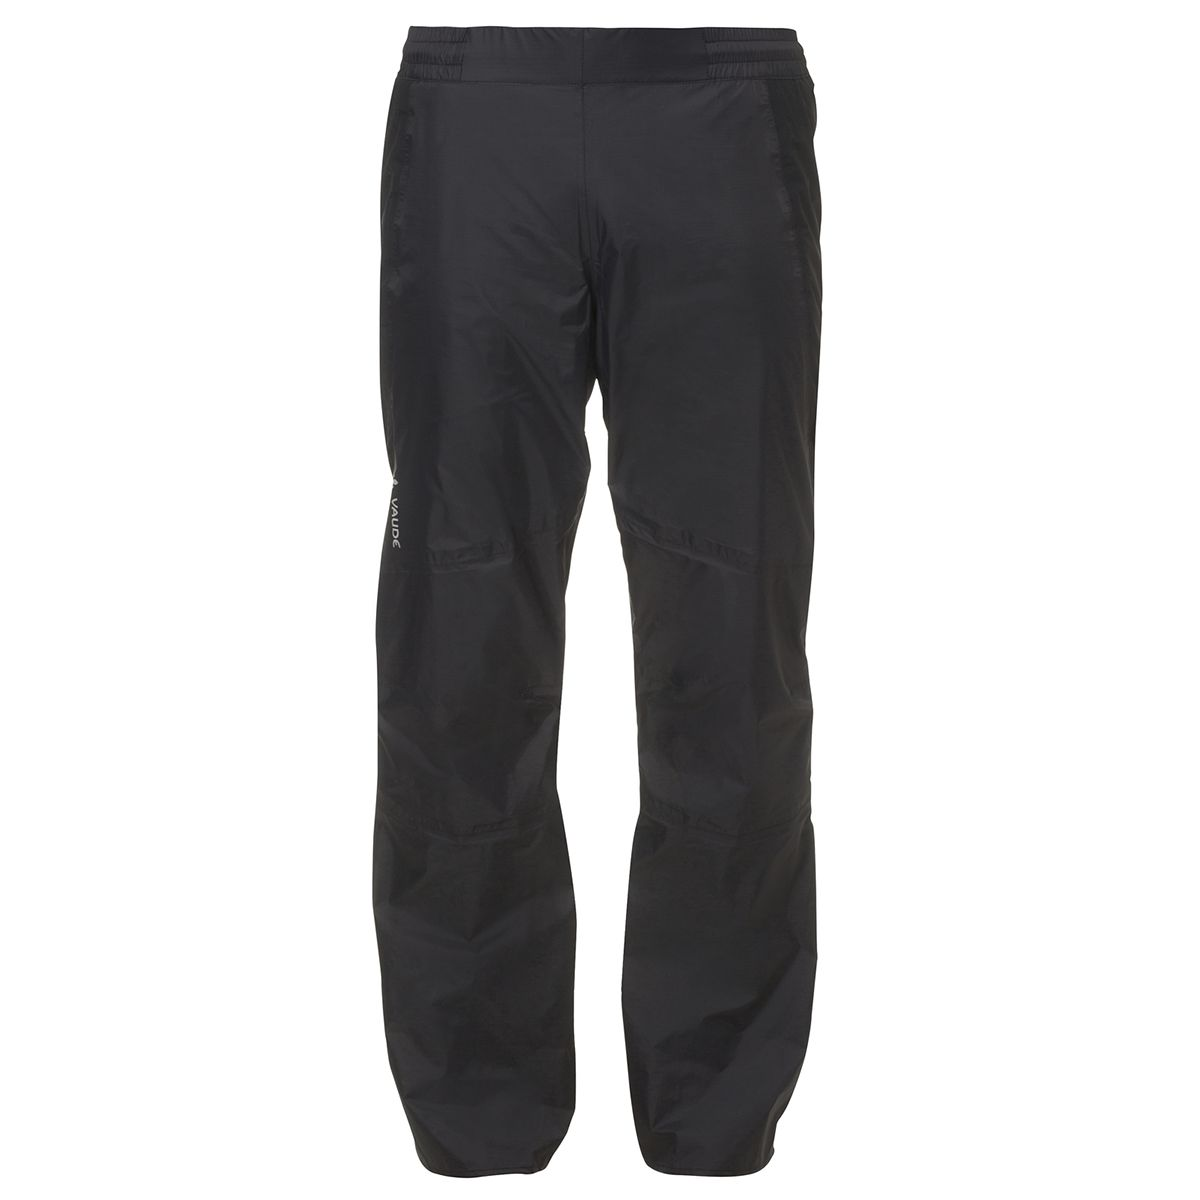 SPRAY PANTS III waterproof trousers